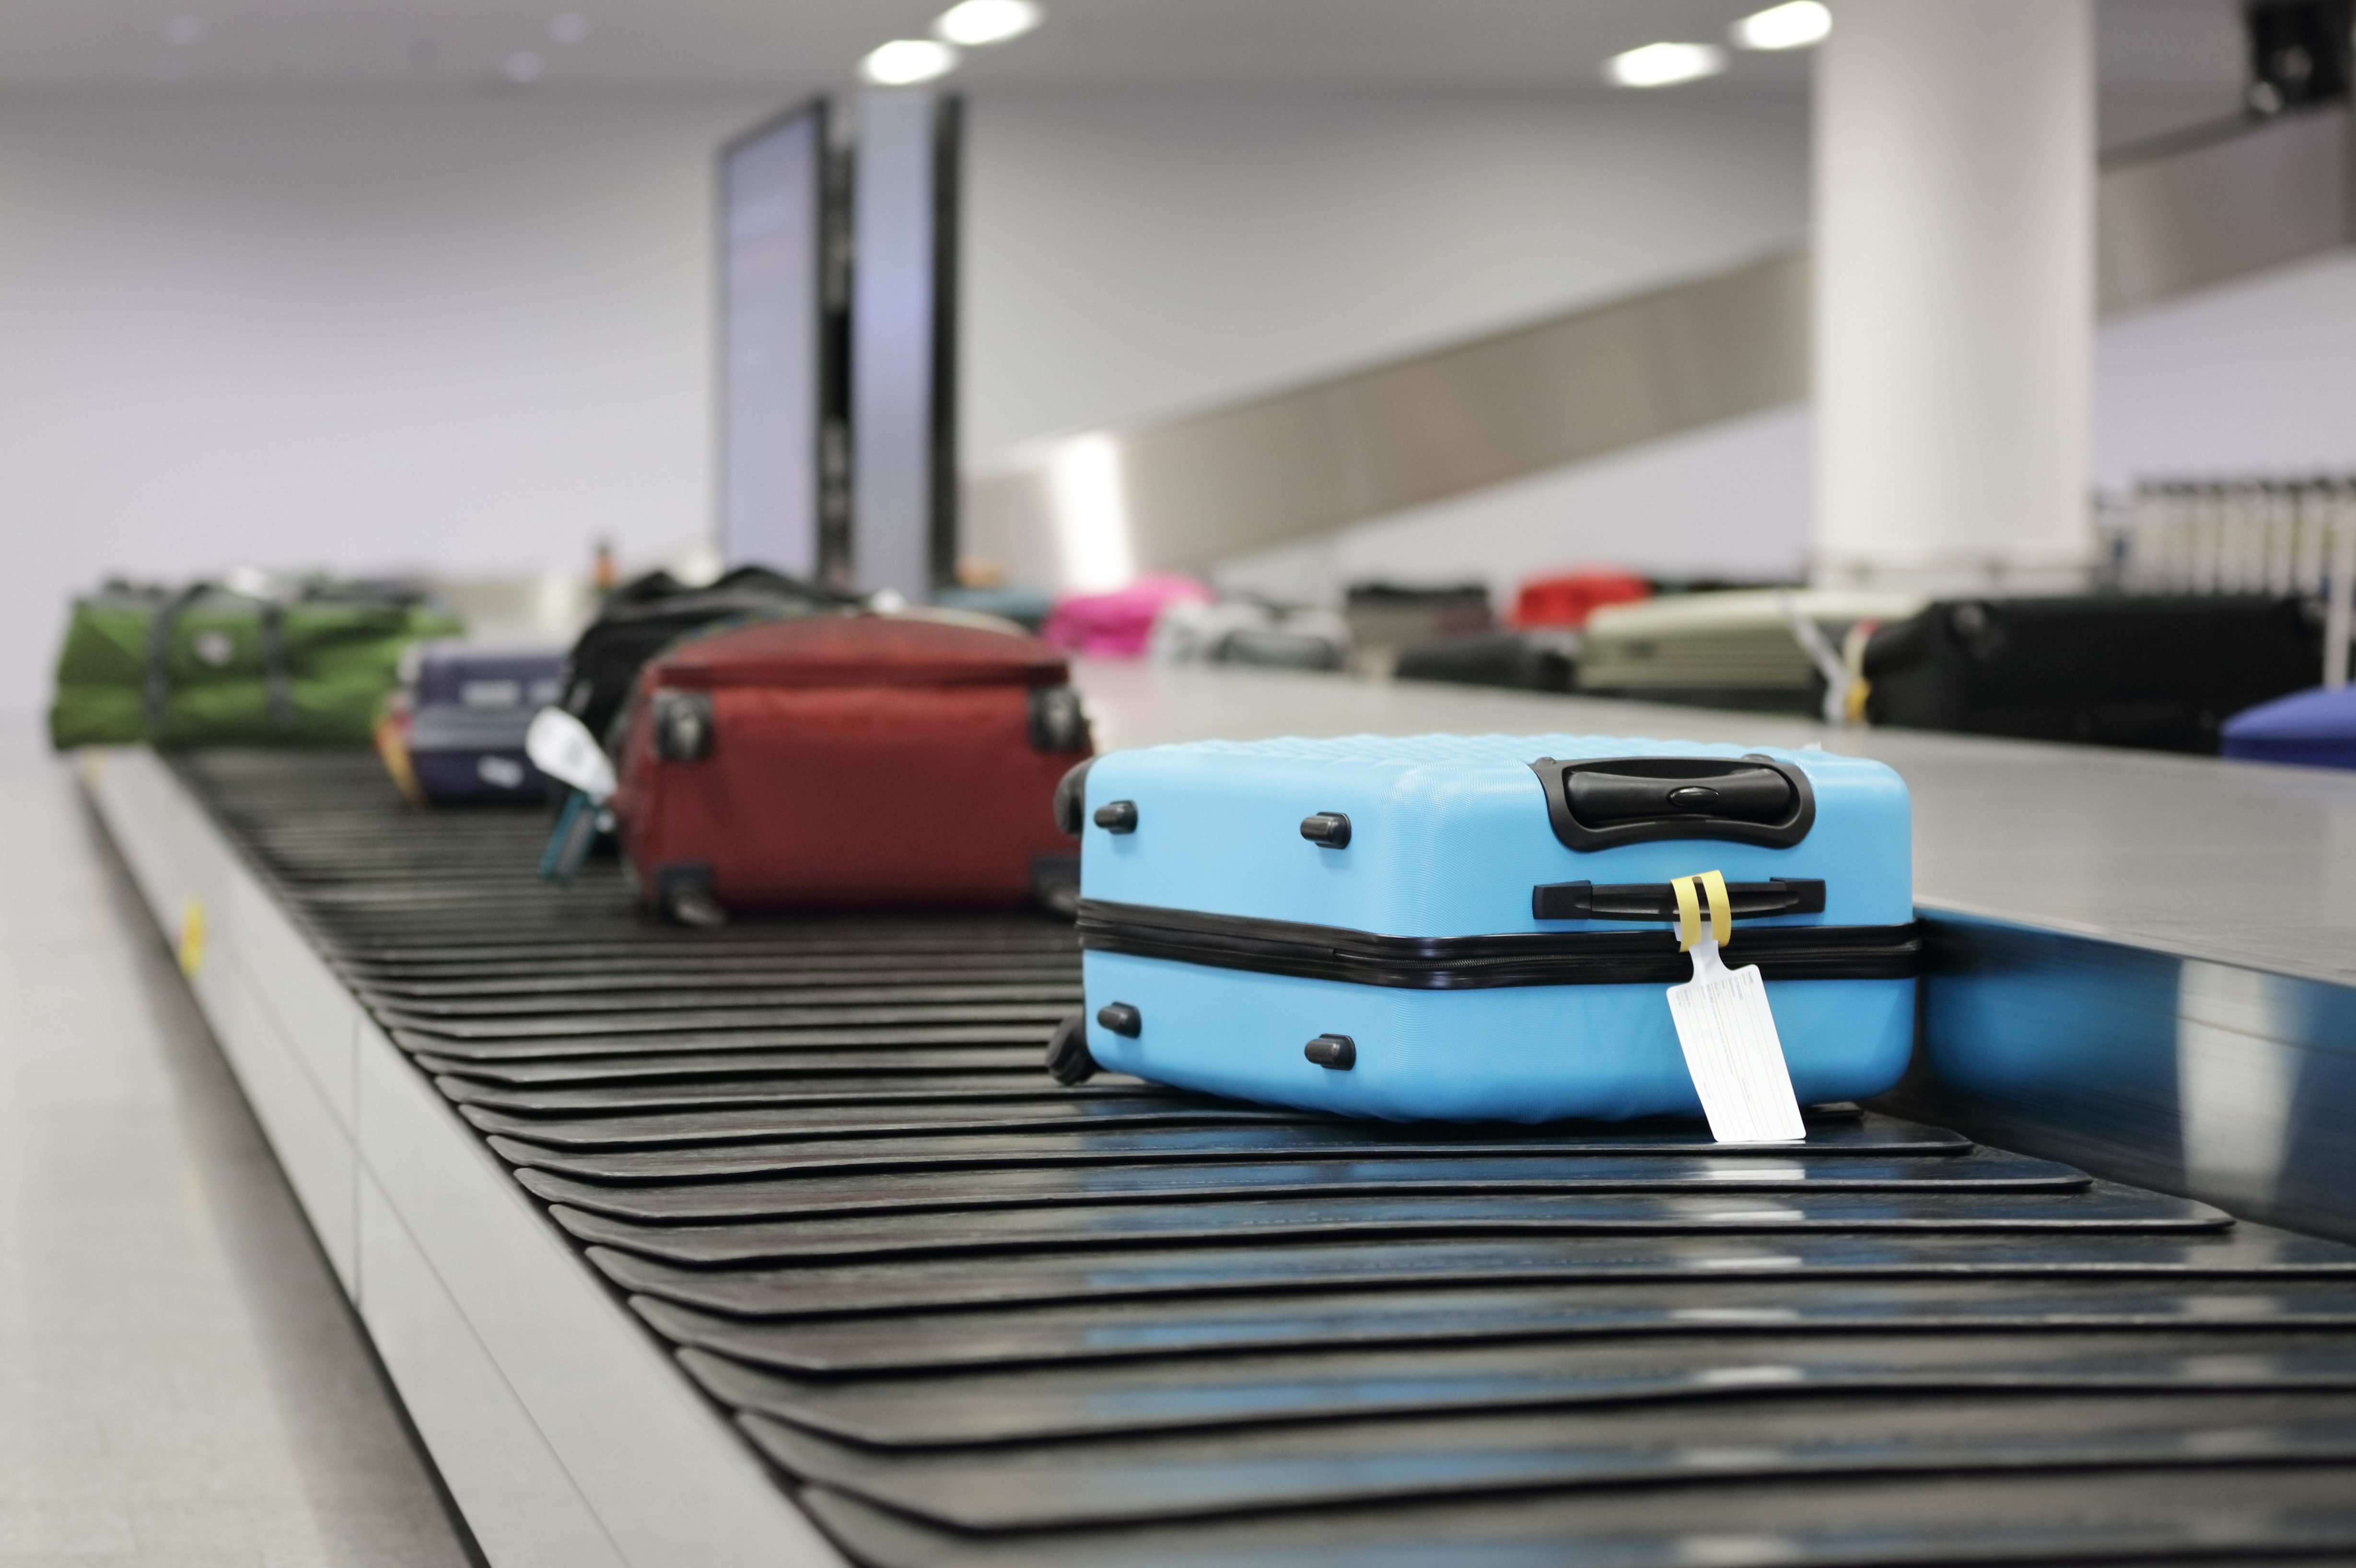 Suitcase or luggage on conveyor belt in the airport